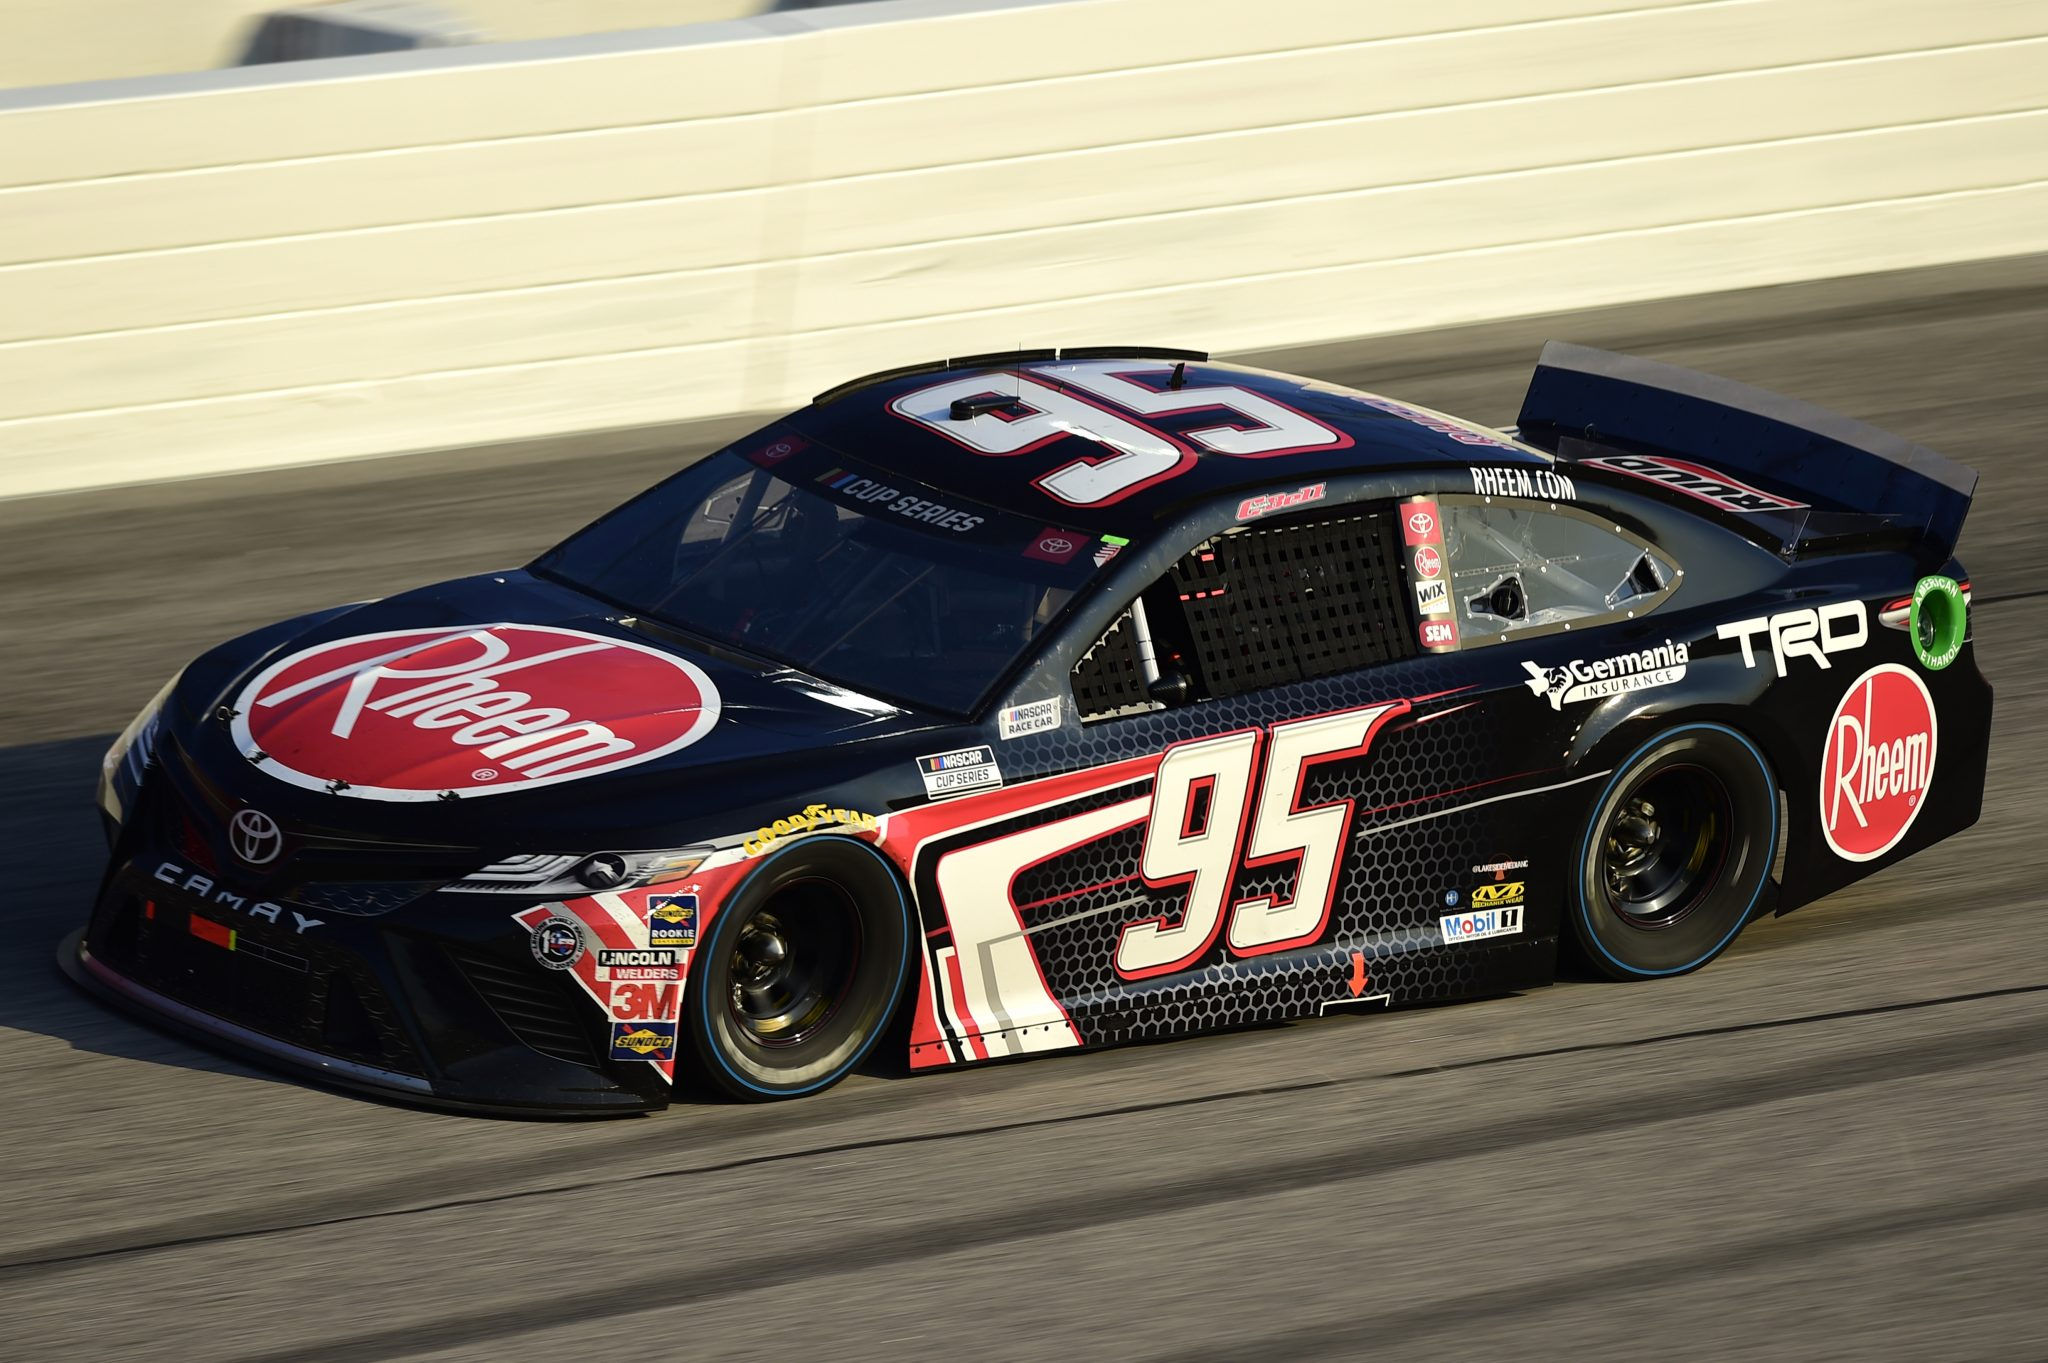 DARLINGTON, SOUTH CAROLINA - SEPTEMBER 06: Christopher Bell, driver of the #95 Rheem Toyota, drives during the NASCAR Cup Series Cook Out Southern 500 at Darlington Raceway on September 06, 2020 in Darlington, South Carolina. (Photo by Jared C. Tilton/Getty Images) | Getty Images